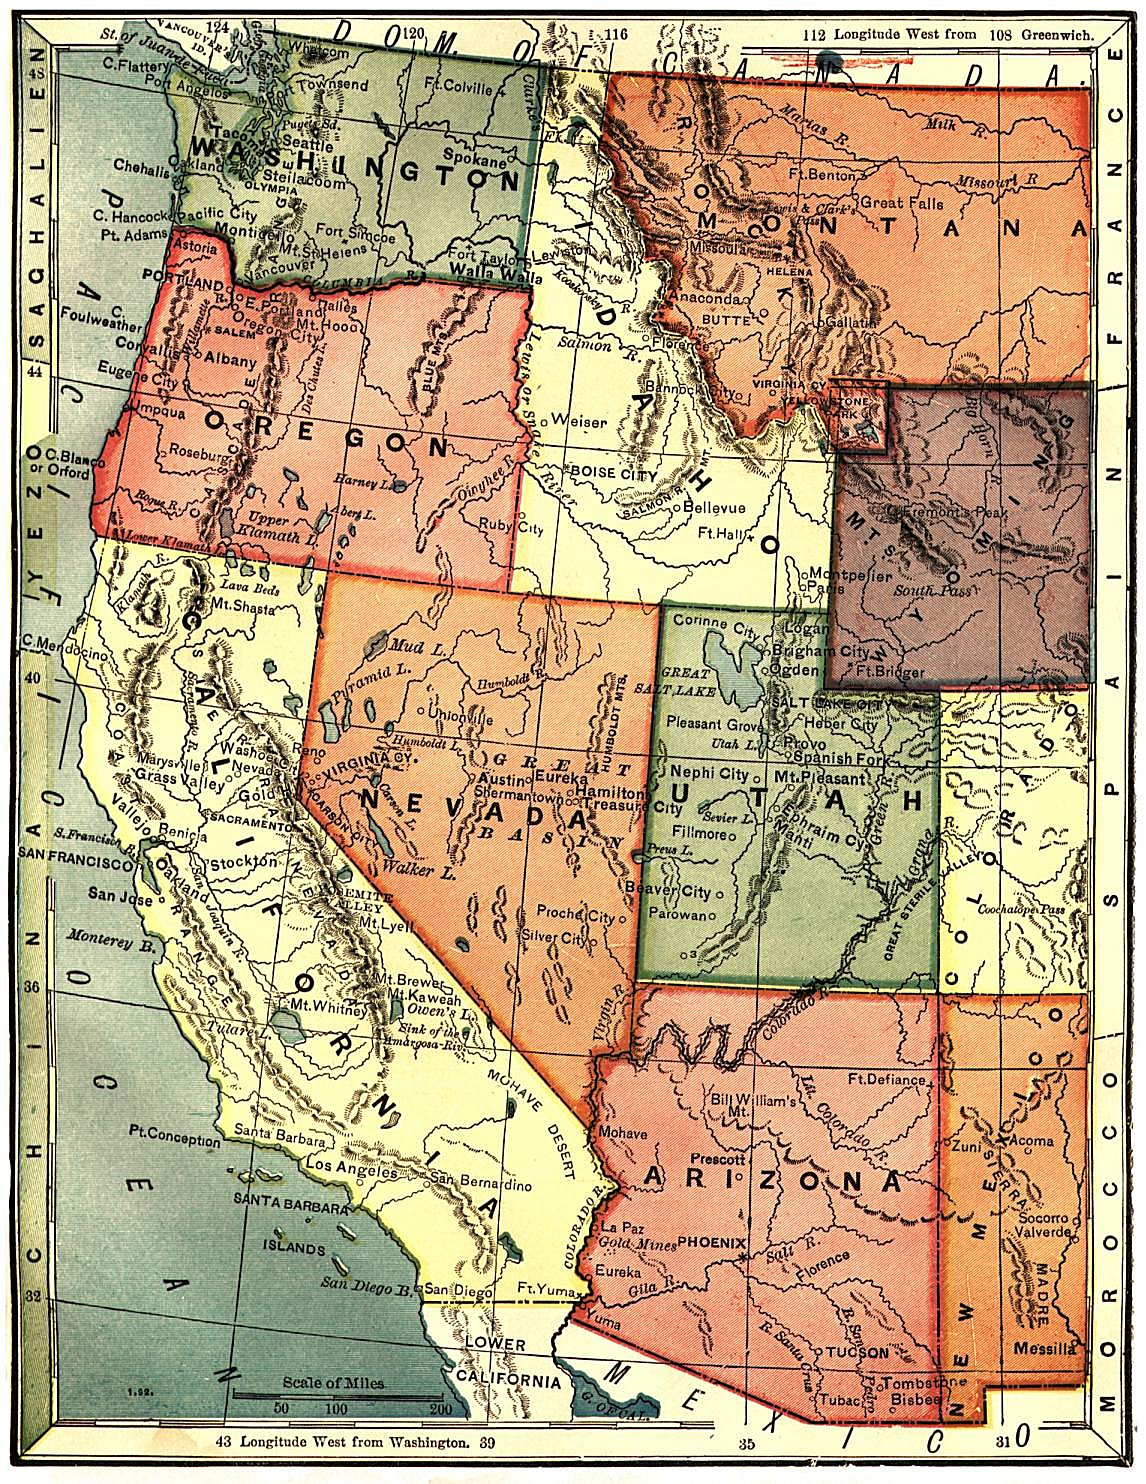 a history of california and arizona in the united states The federal law made it illegal to knowingly cast contempt upon any flag of the united states by publicly mutilating, defacing, defiling, burning or trampling upon it the law defined flag in an expansive manner similar to most states.